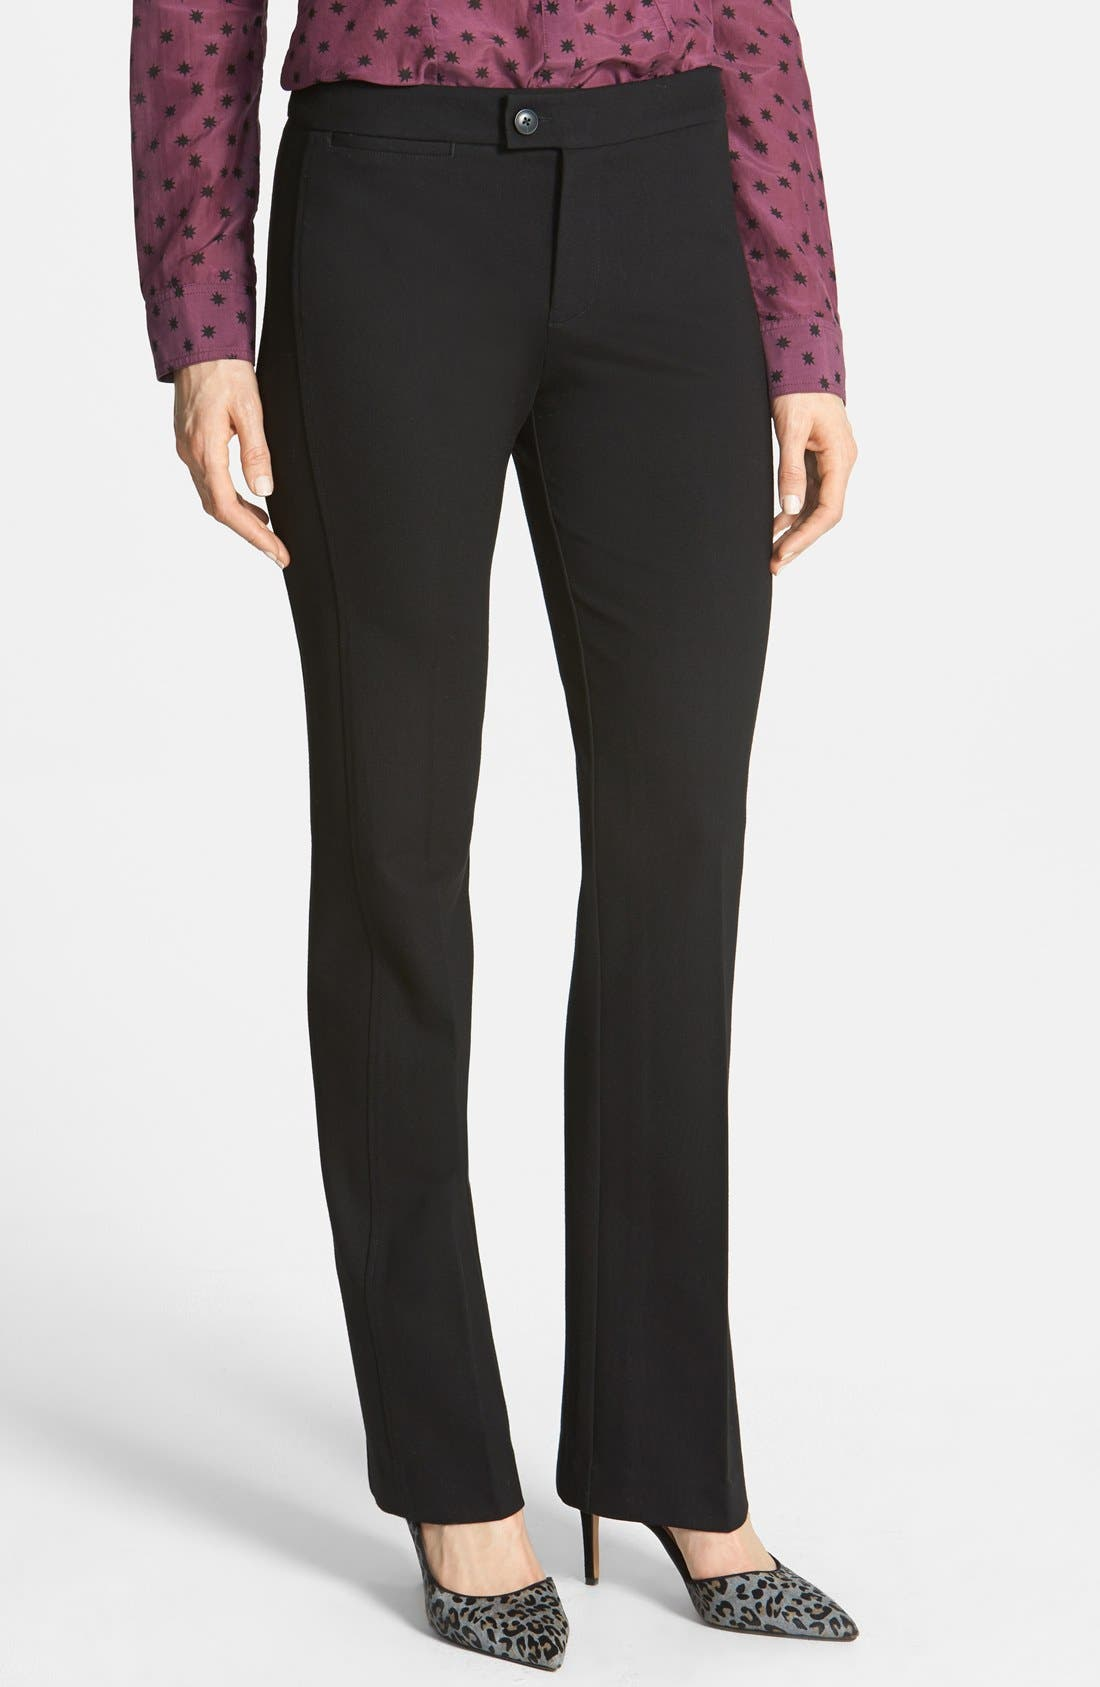 Alternate Image 1 Selected - NYDJ Stretch Ponte Knit Trousers (Petite)